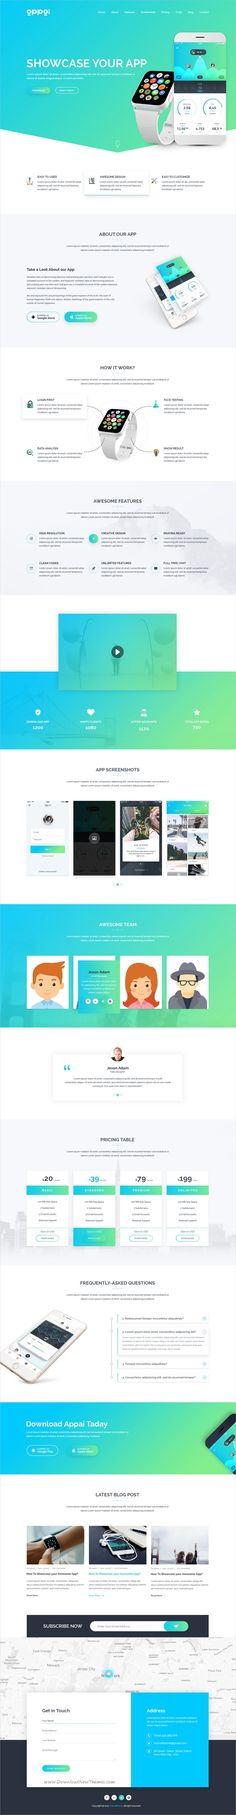 APPAI is a powerful #Photoshop #template for #Apps Landing page websites with 3 homepage layouts and 10 organized PSD pages download now? https://themeforest.net/item/appai-responsive-app-landing-psd-template/19357963?ref=Datasata